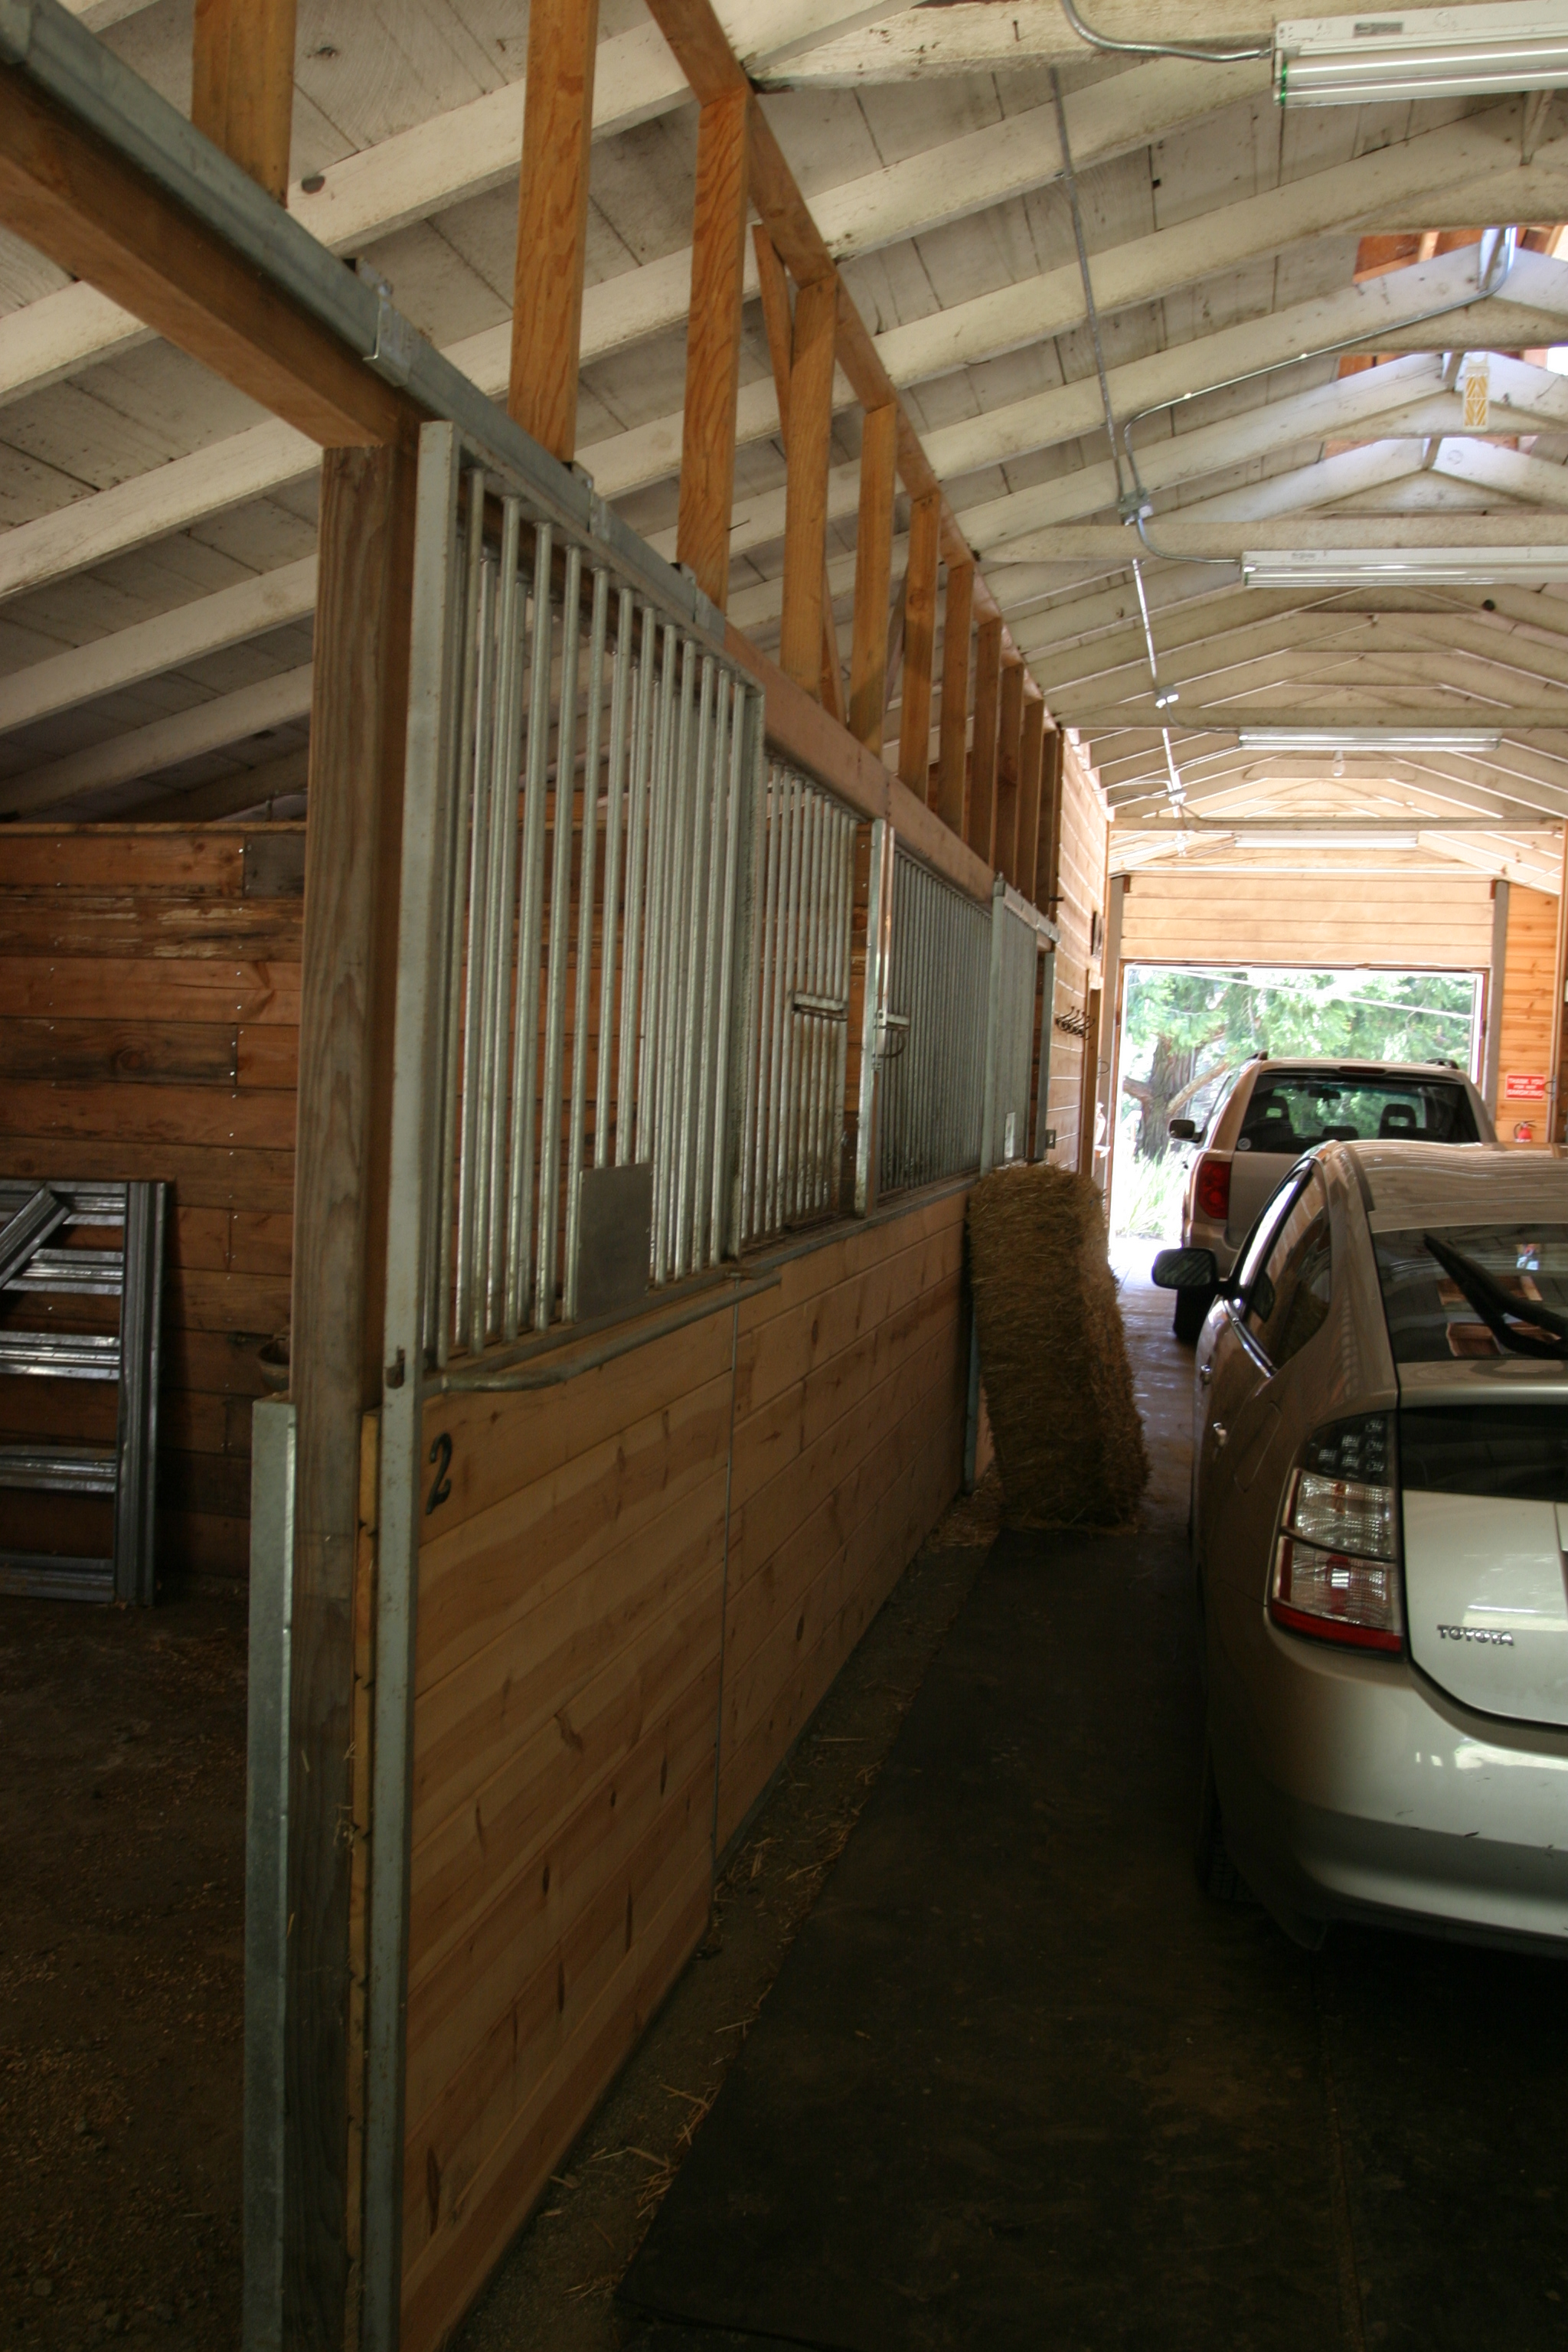 Inside horse barn and parked cars